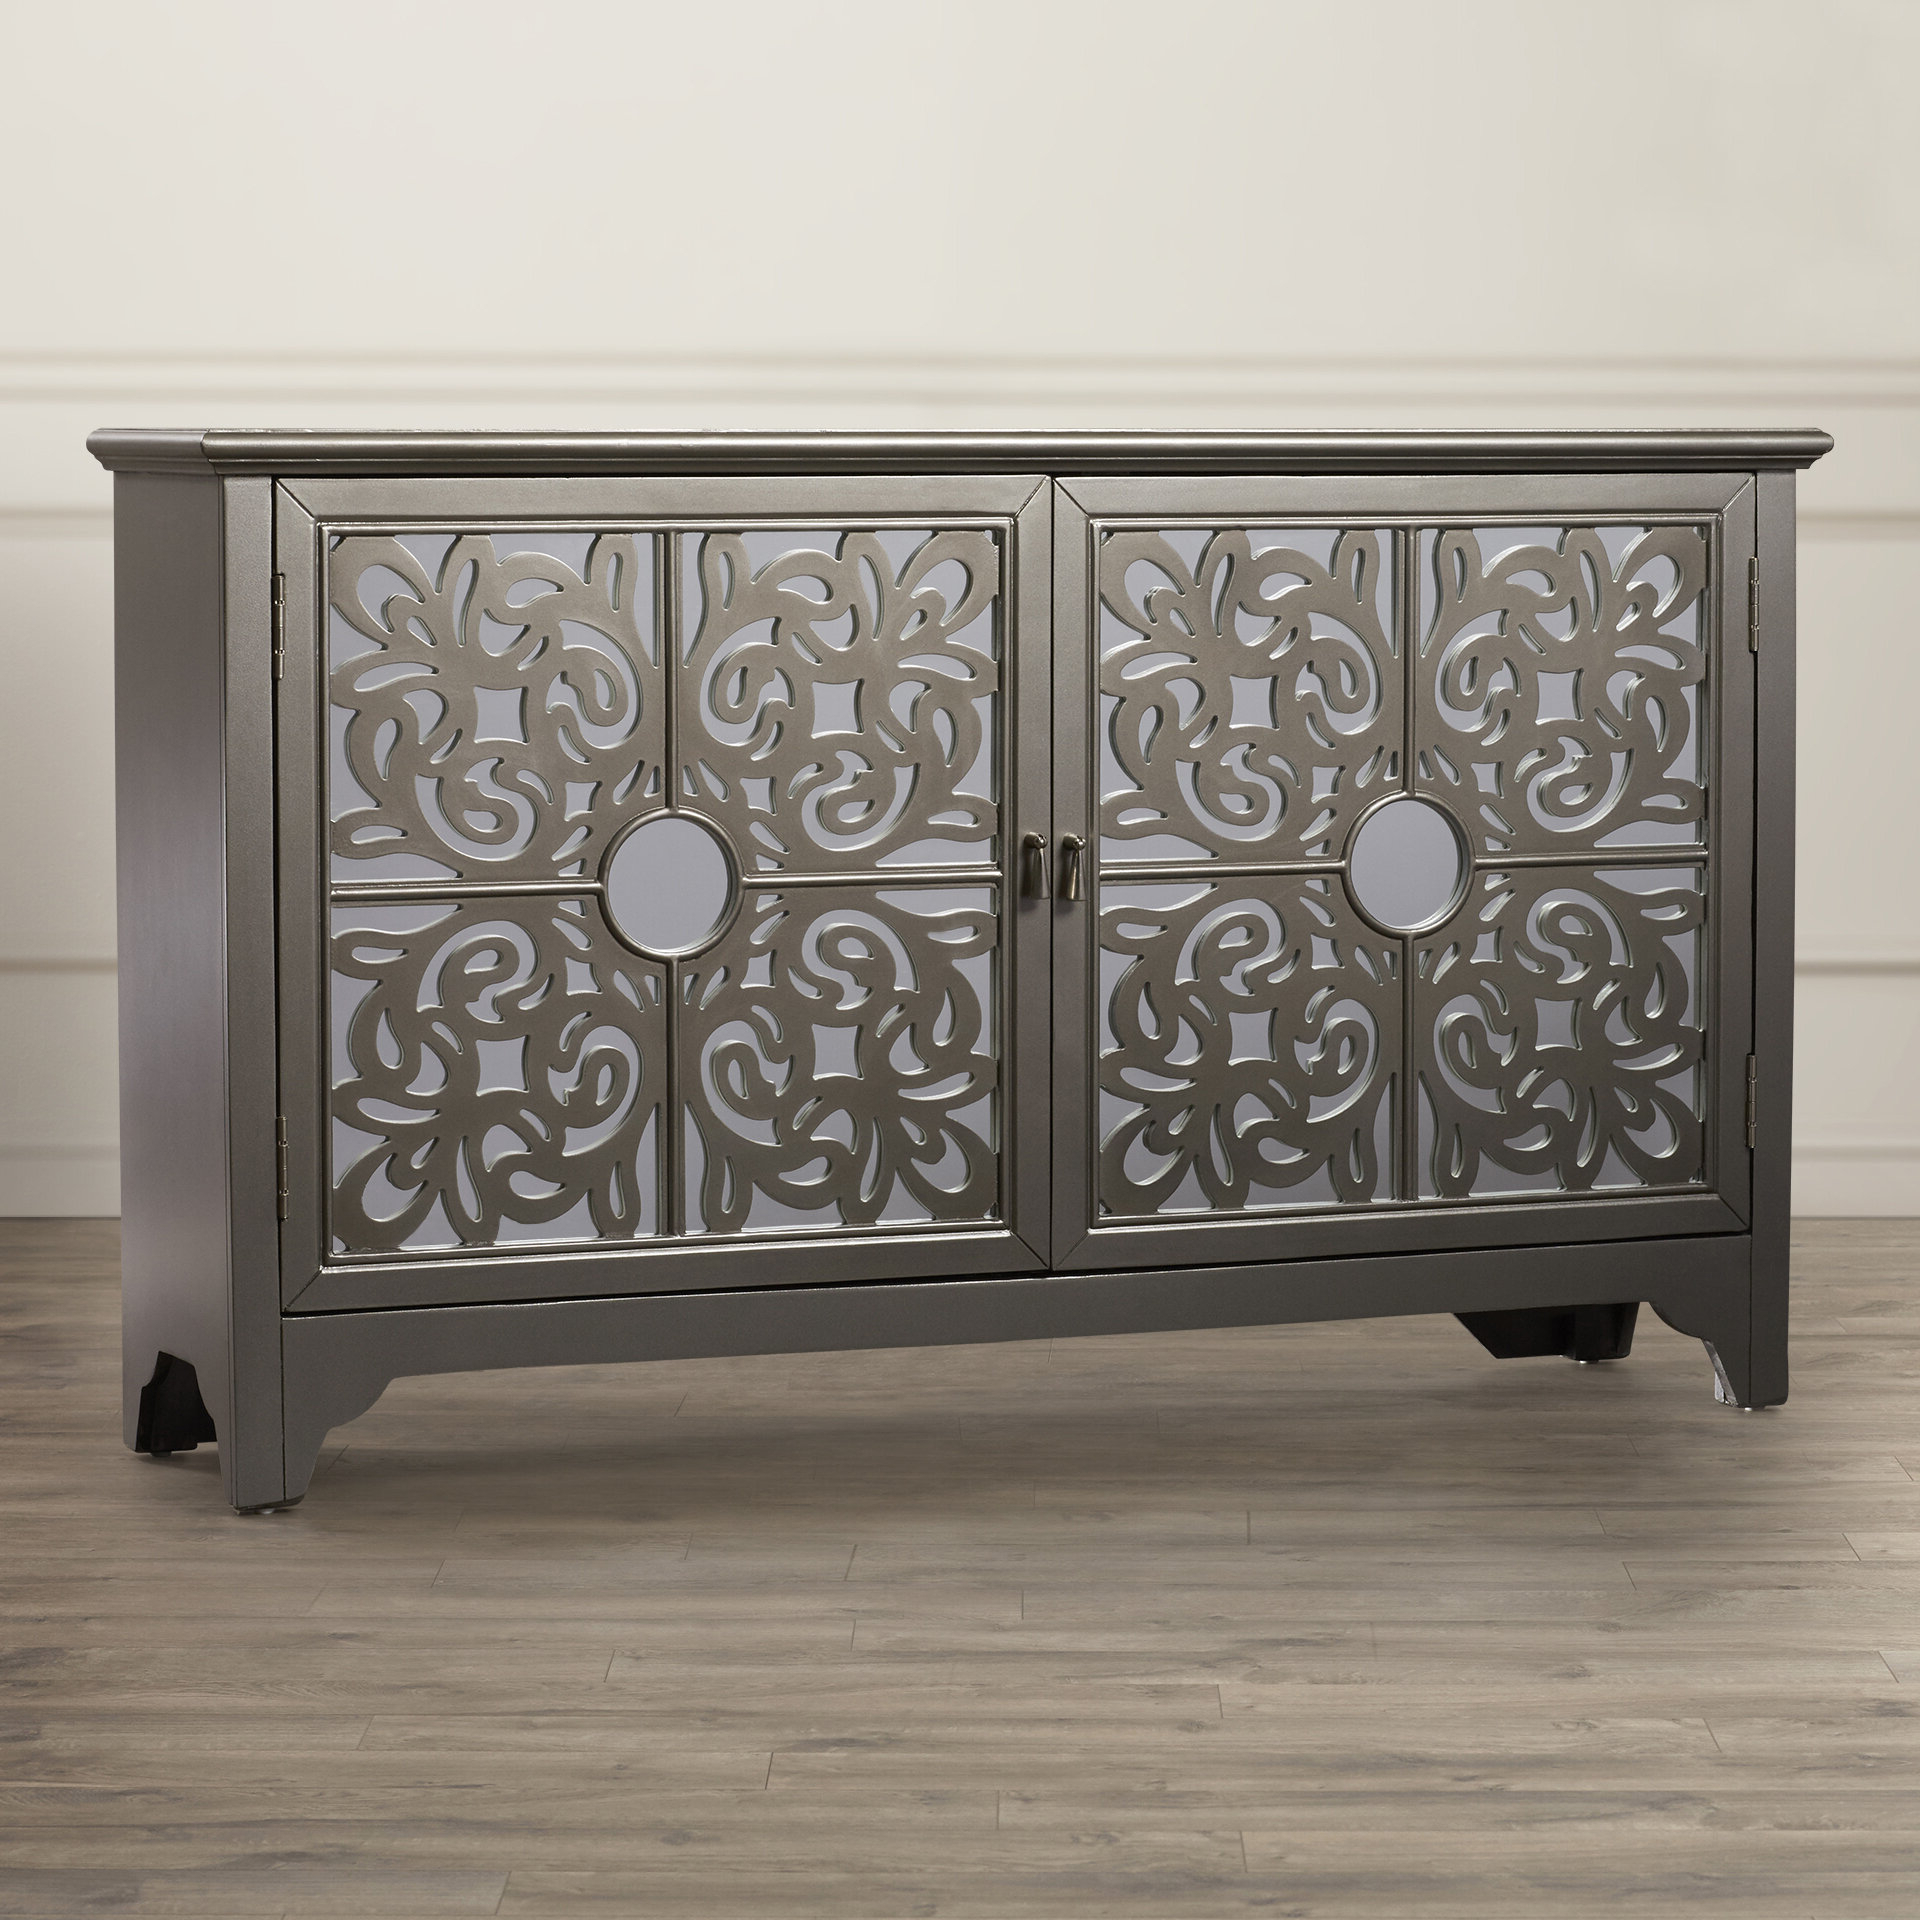 Fashionable Alkmene Sideboard Throughout Stillwater Sideboards (View 7 of 20)